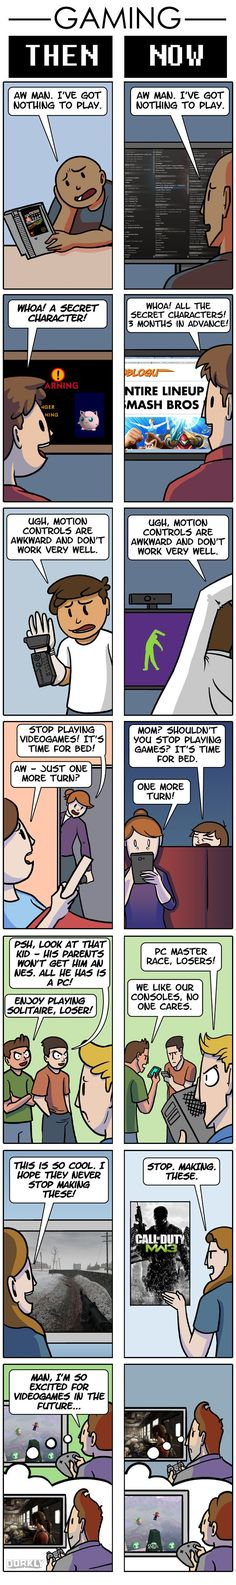 Another great comic by Julia Lepetit and Andrew Bridgman from Dorkly. [Source: Dorkly]